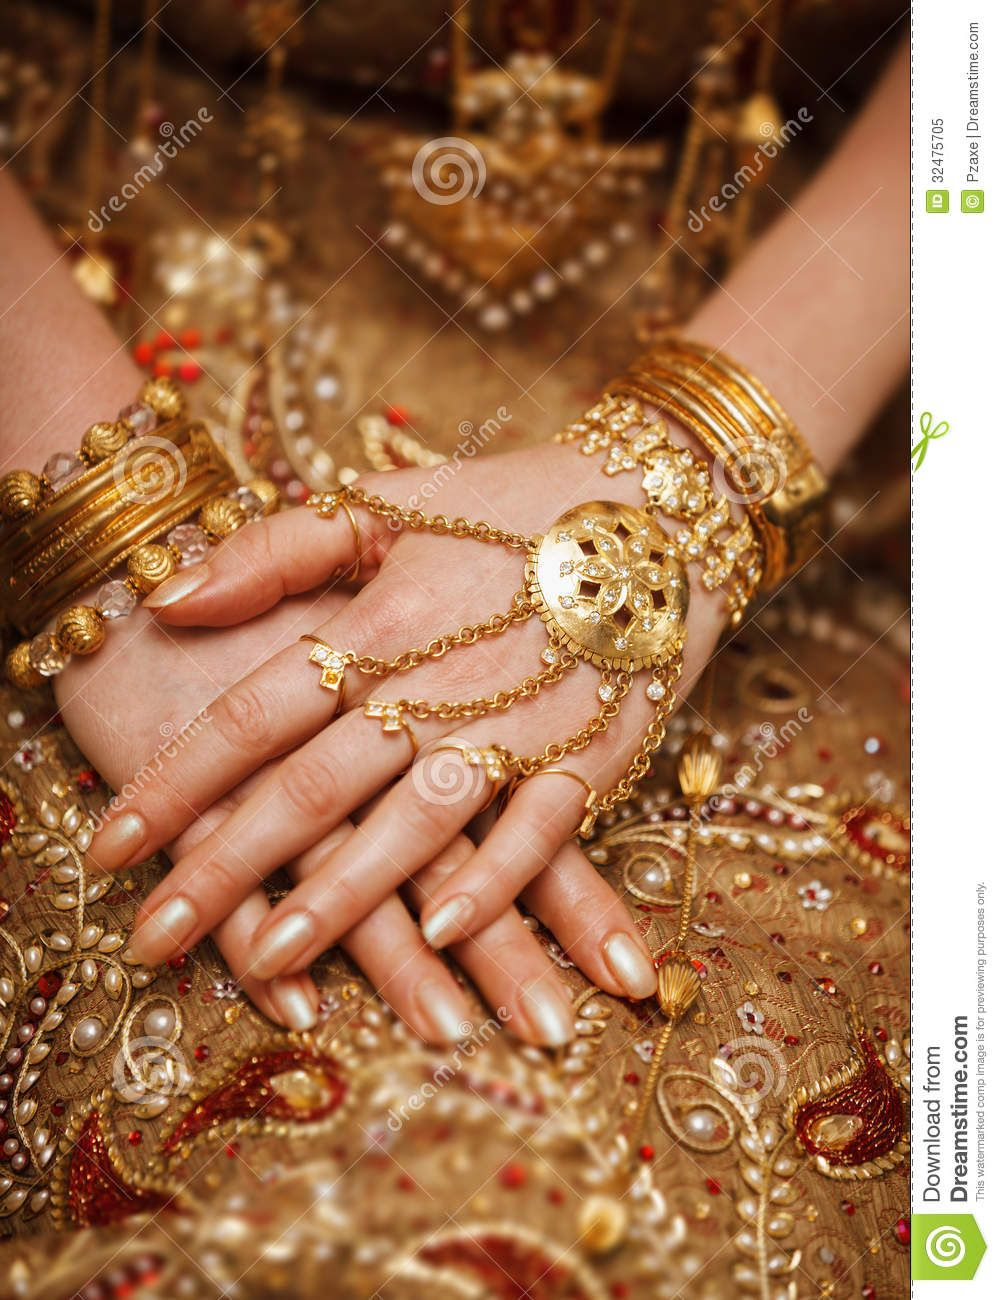 Hands Of A Bride In A Traditional Wedding Jewelry. Sri